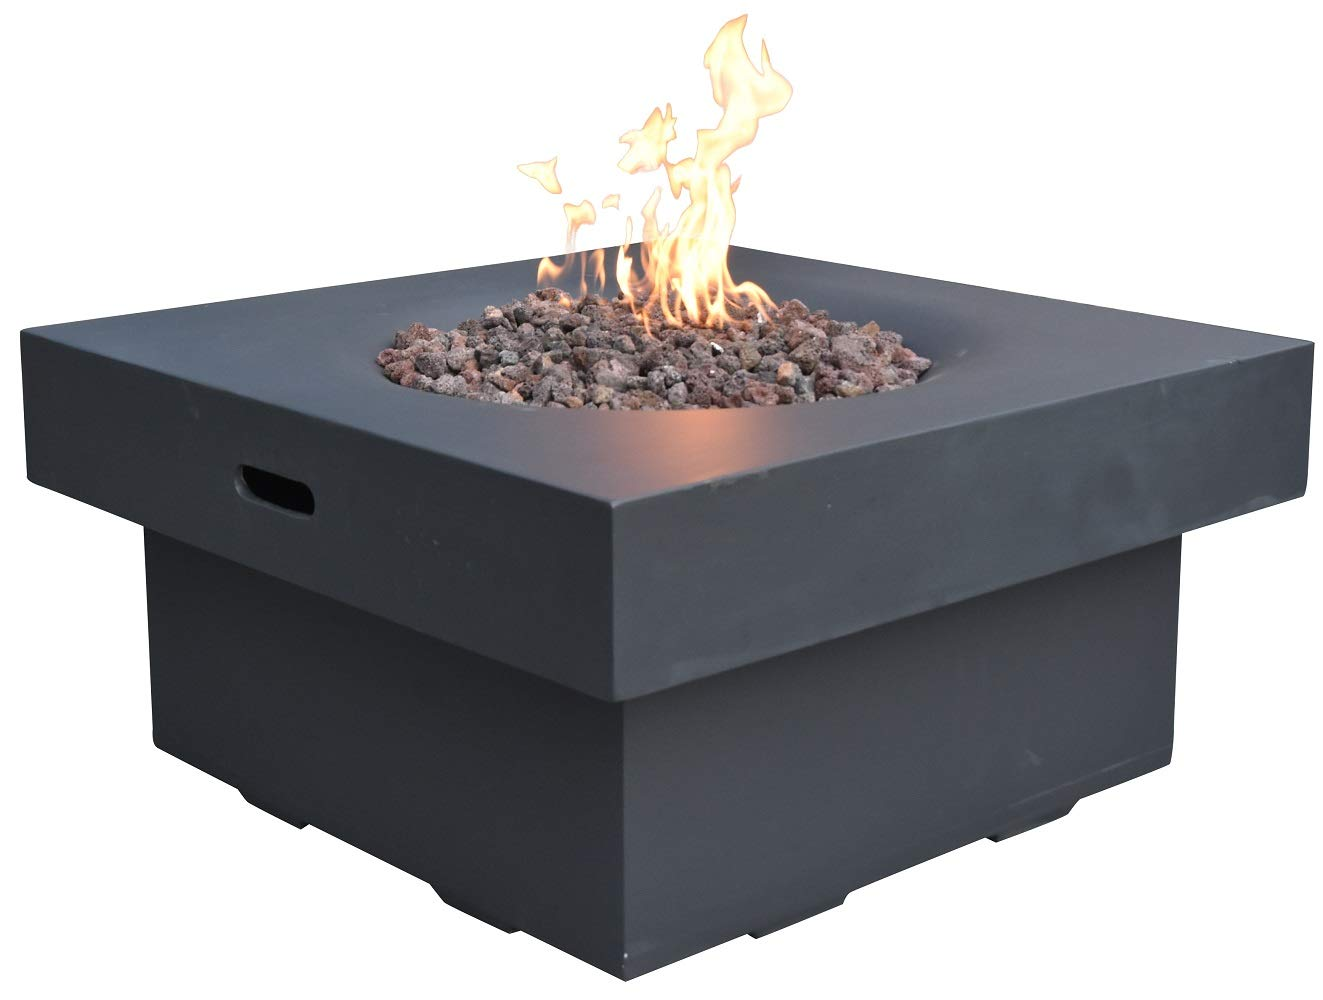 Modeno Brandford Outdoor Gas Firepit Table 34 Inches Natural Gas Fire Pit Patio Heater Concrete High Floor Firepits Outside Electronic Ignition Backyard Fireplace Cover Lava Rock Included